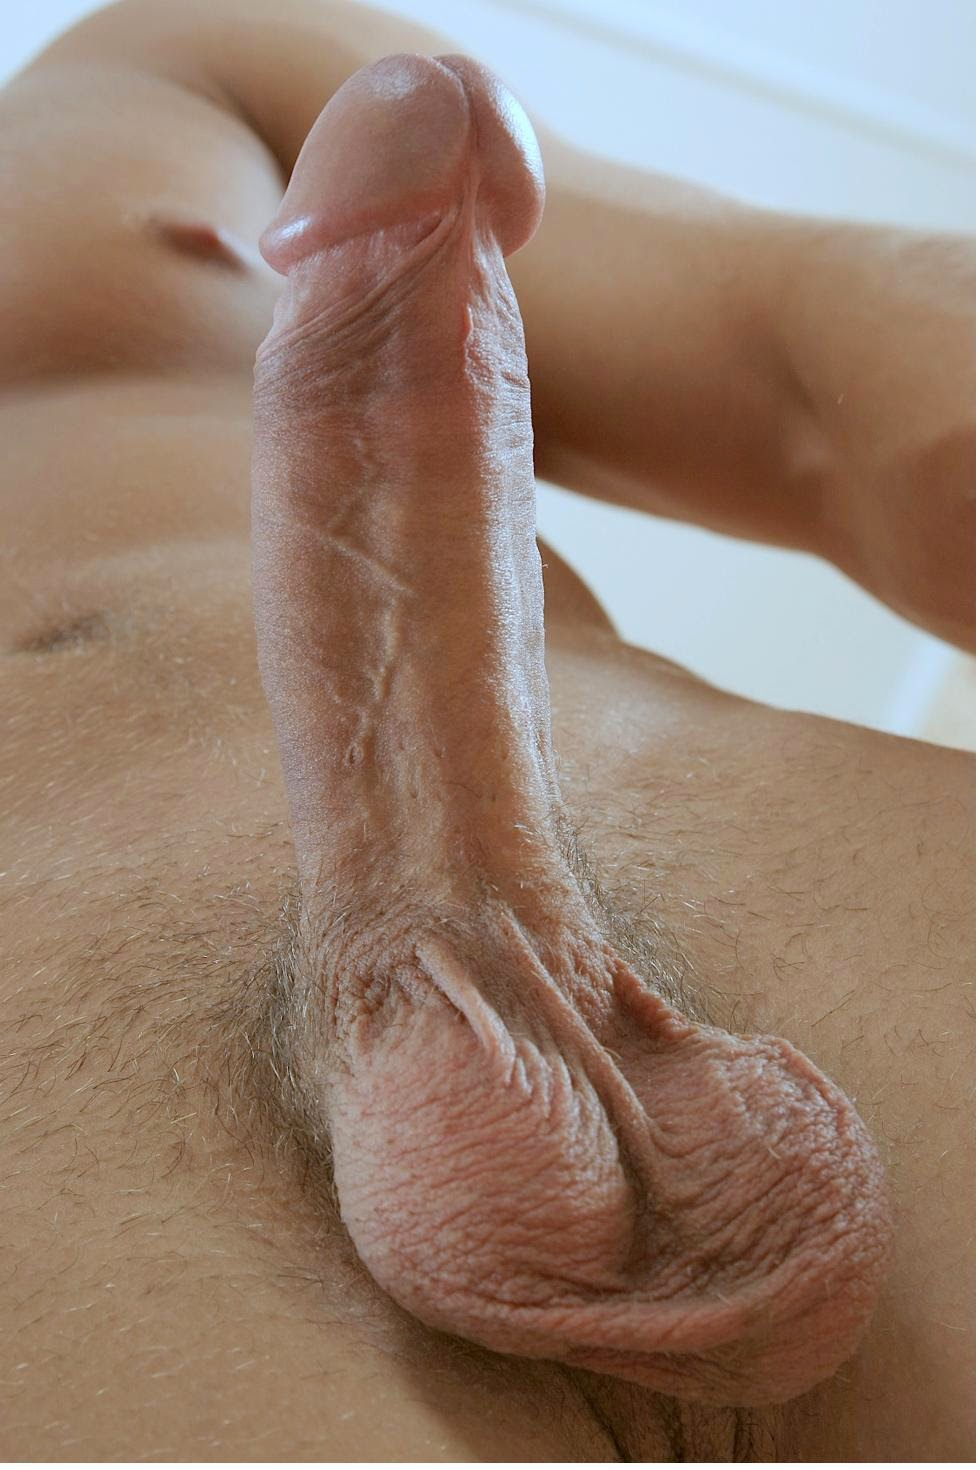 Huge shaved cocks